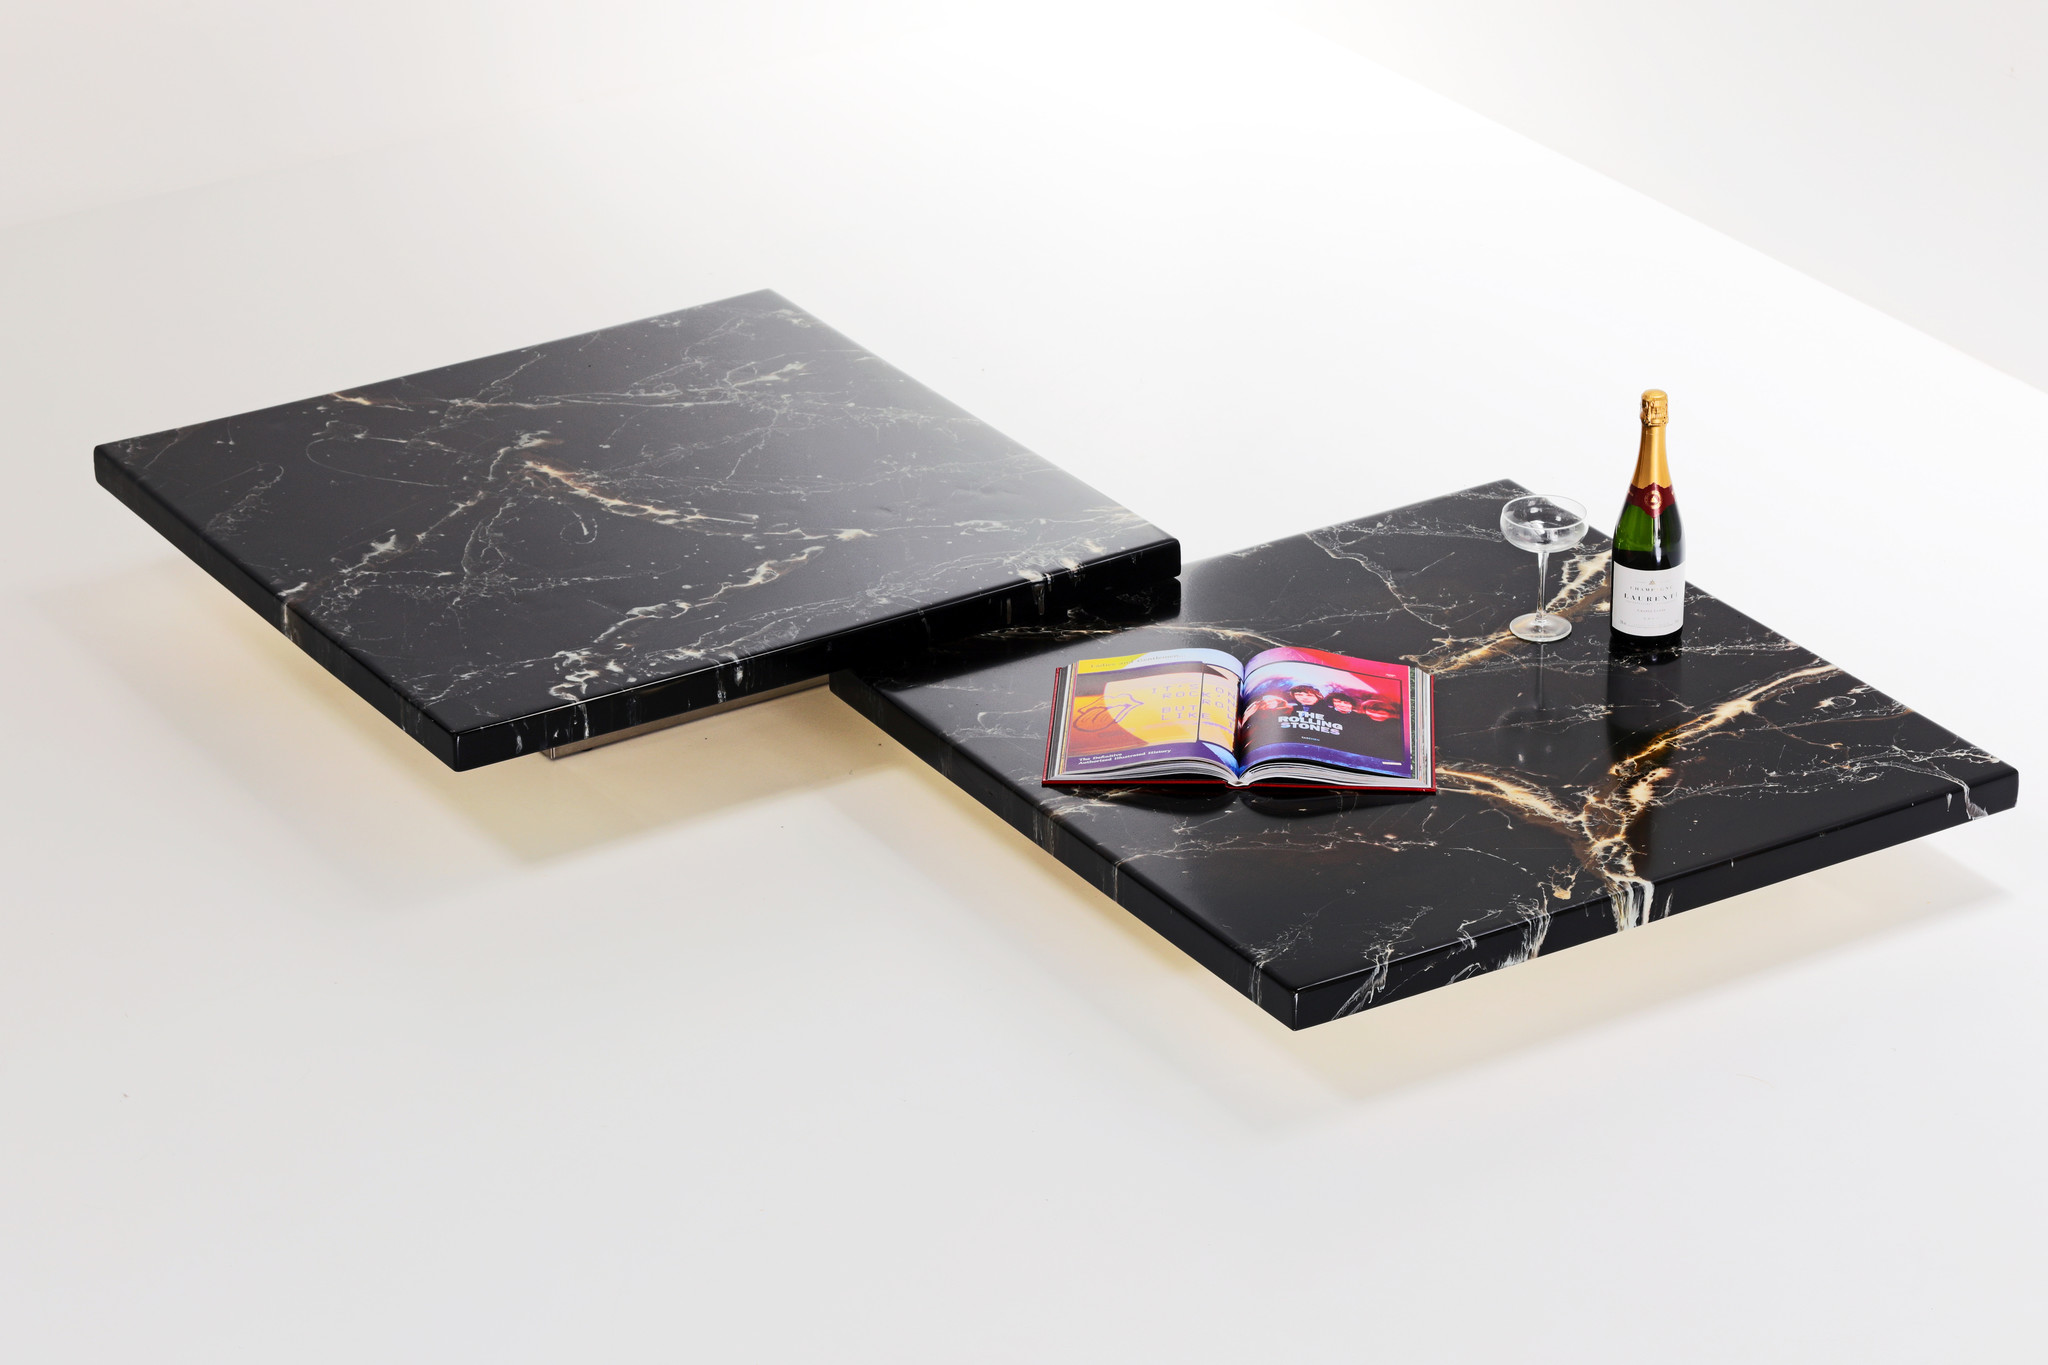 Low Coffee table set in marbled finish